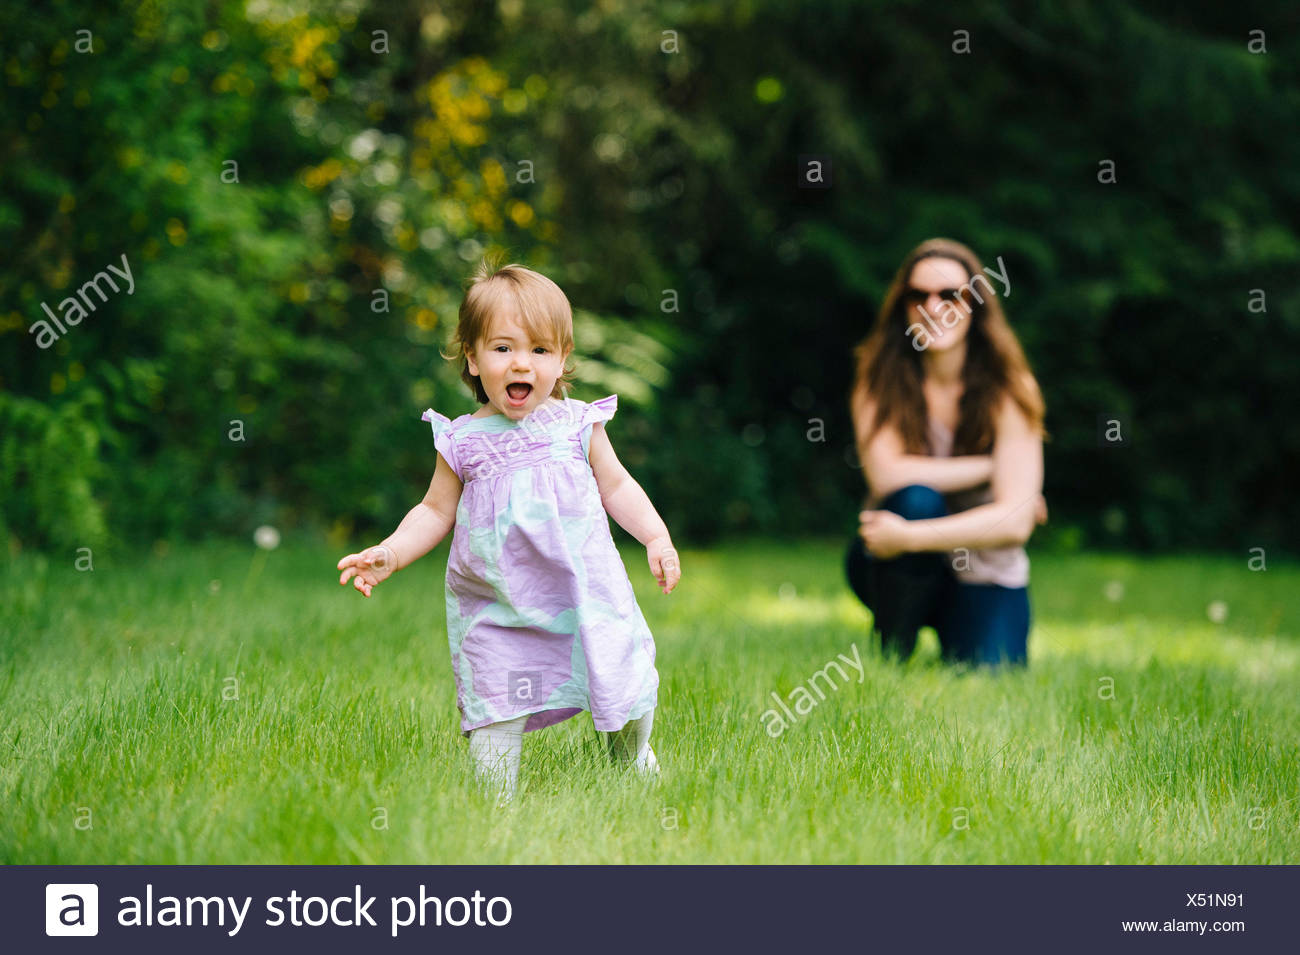 Female toddler running away from watching mother in park Stock Photo